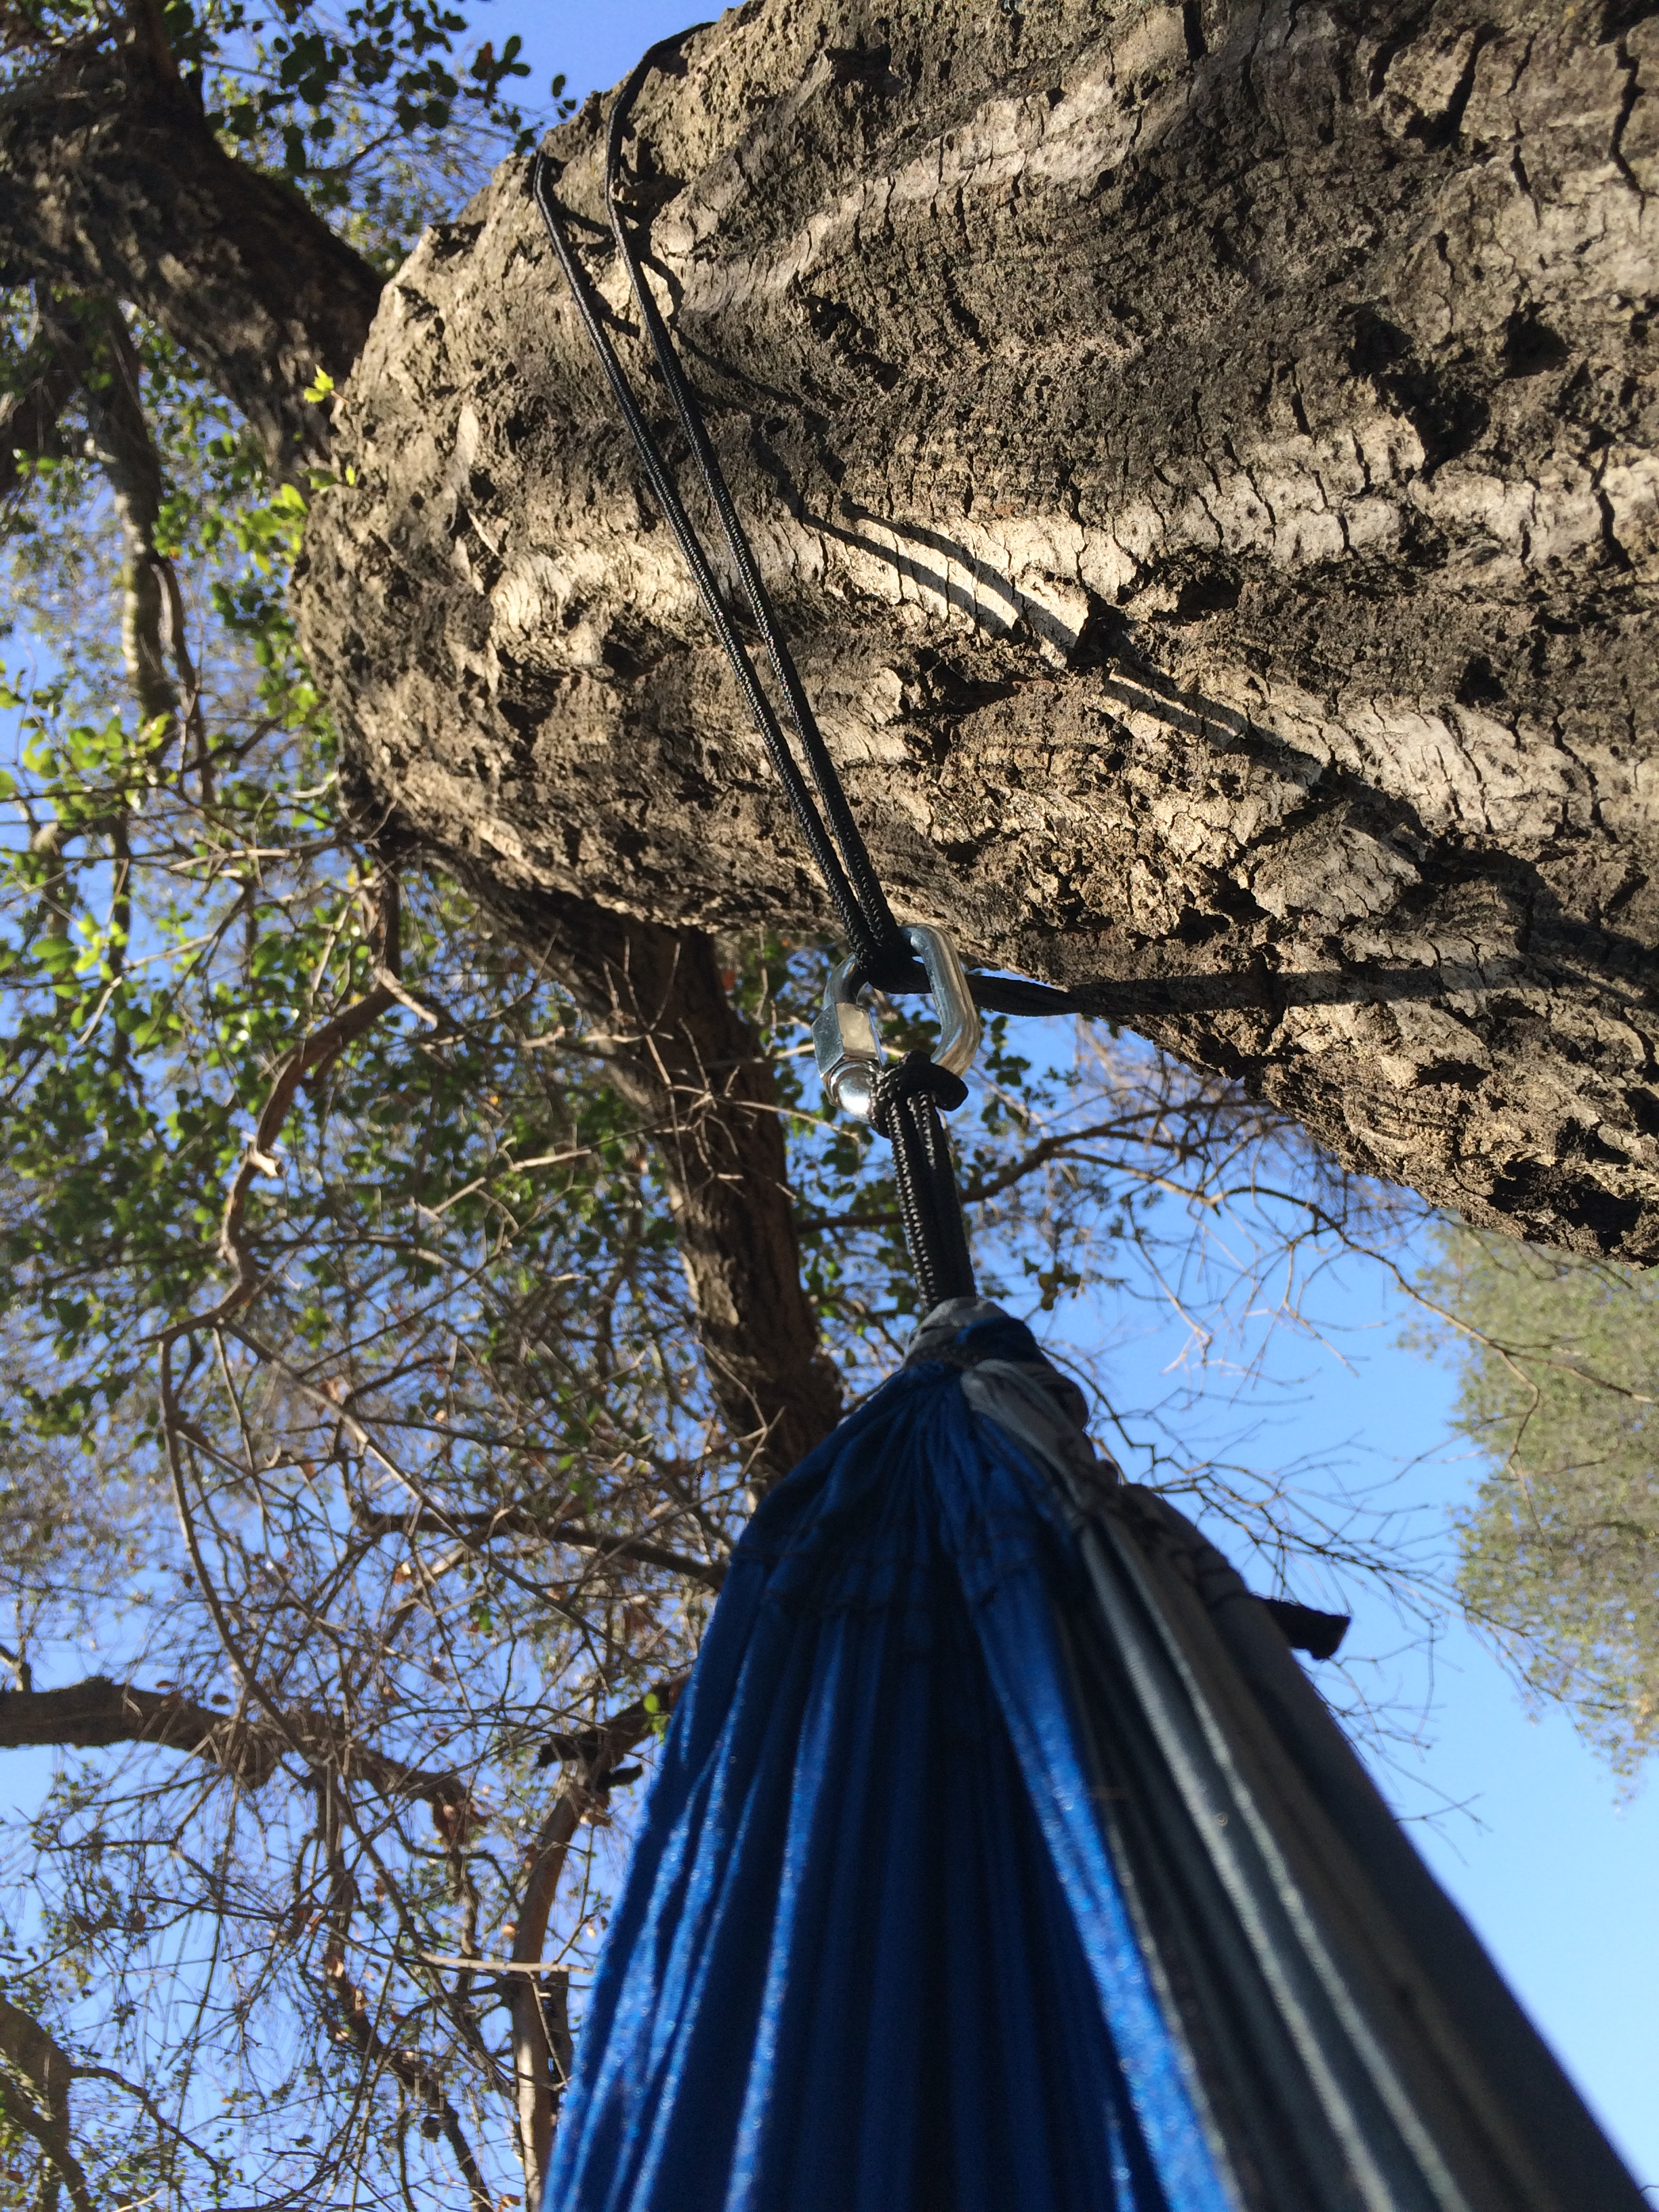 The polypropane cables and carabiners provide a durable and secure connection to the tree.